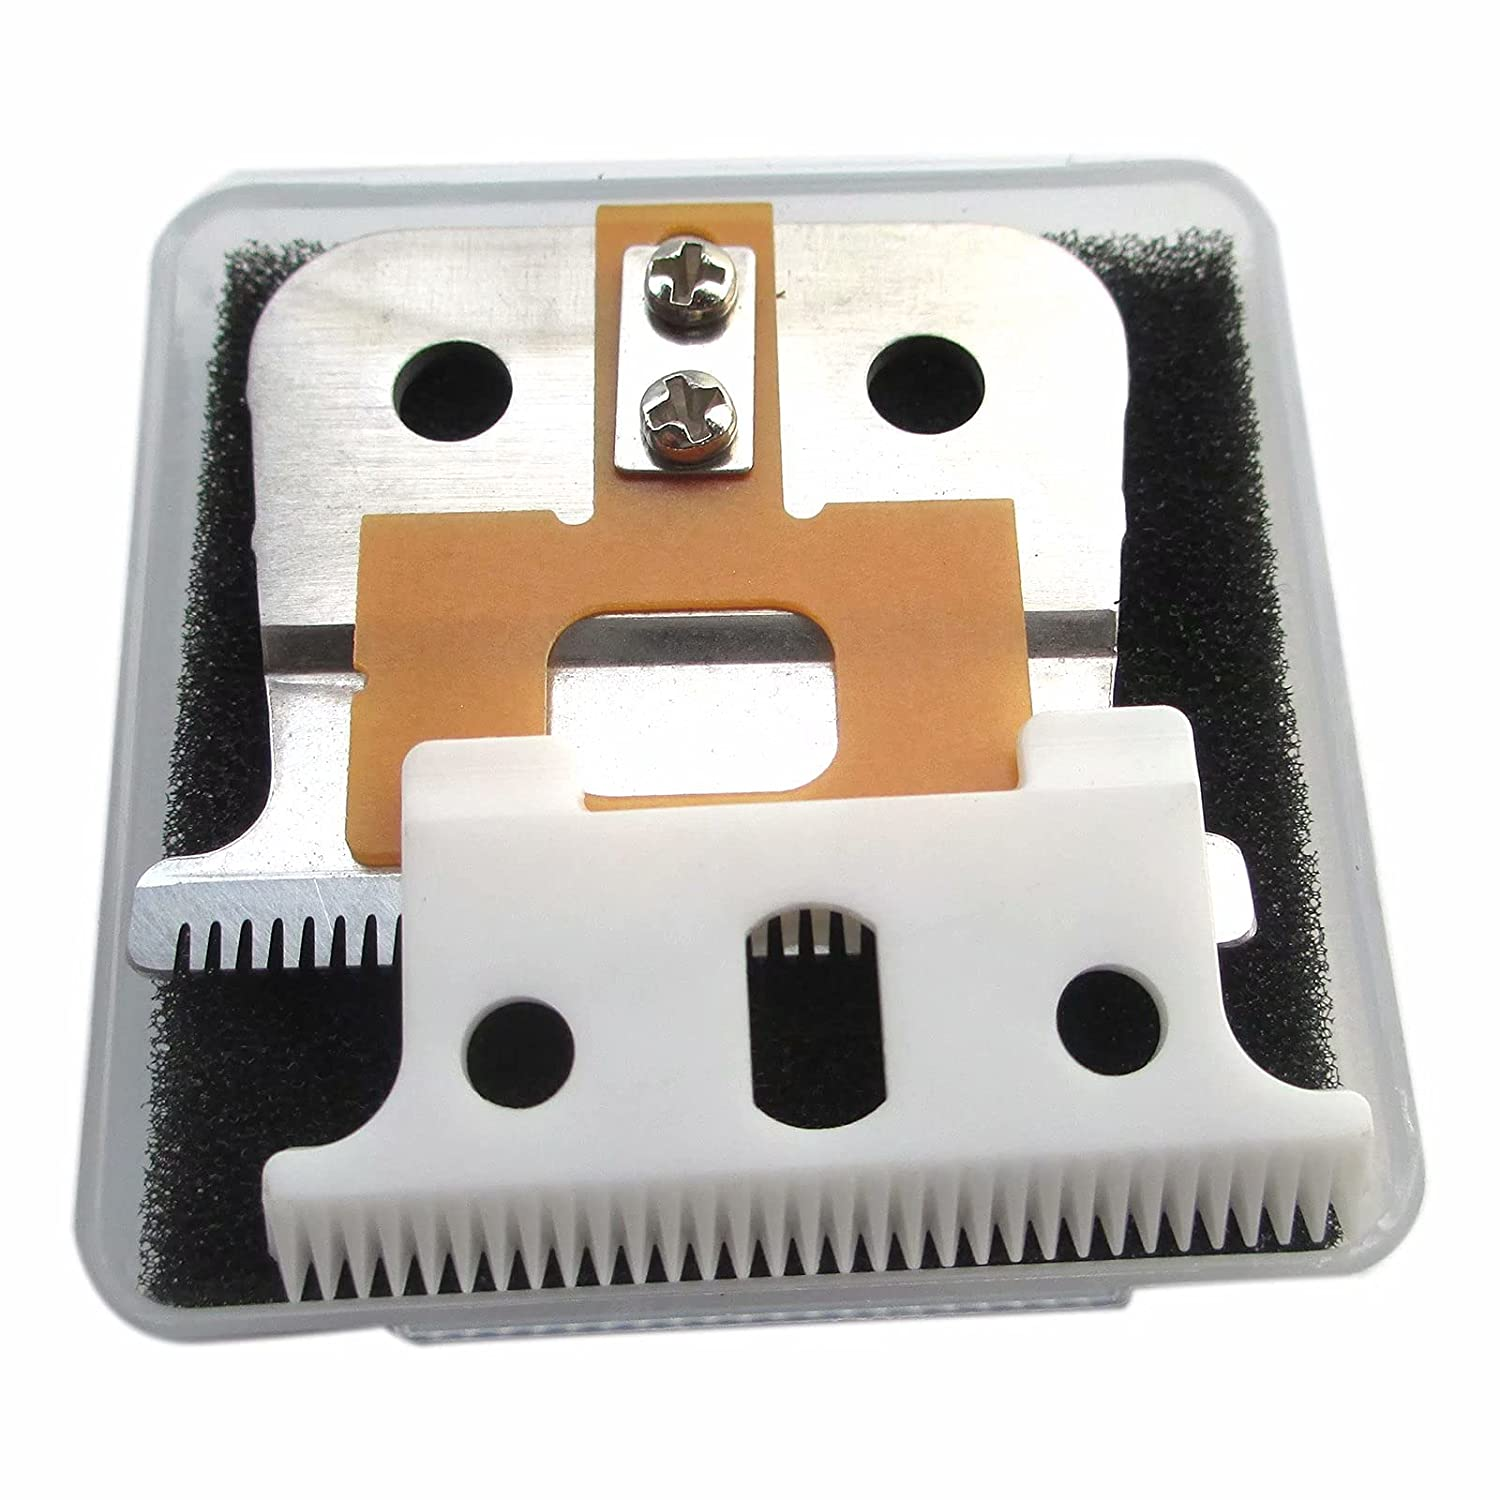 T Outliner Sale item Blades Price reduction Trimmers Clippers F Blade Detailer Replacement